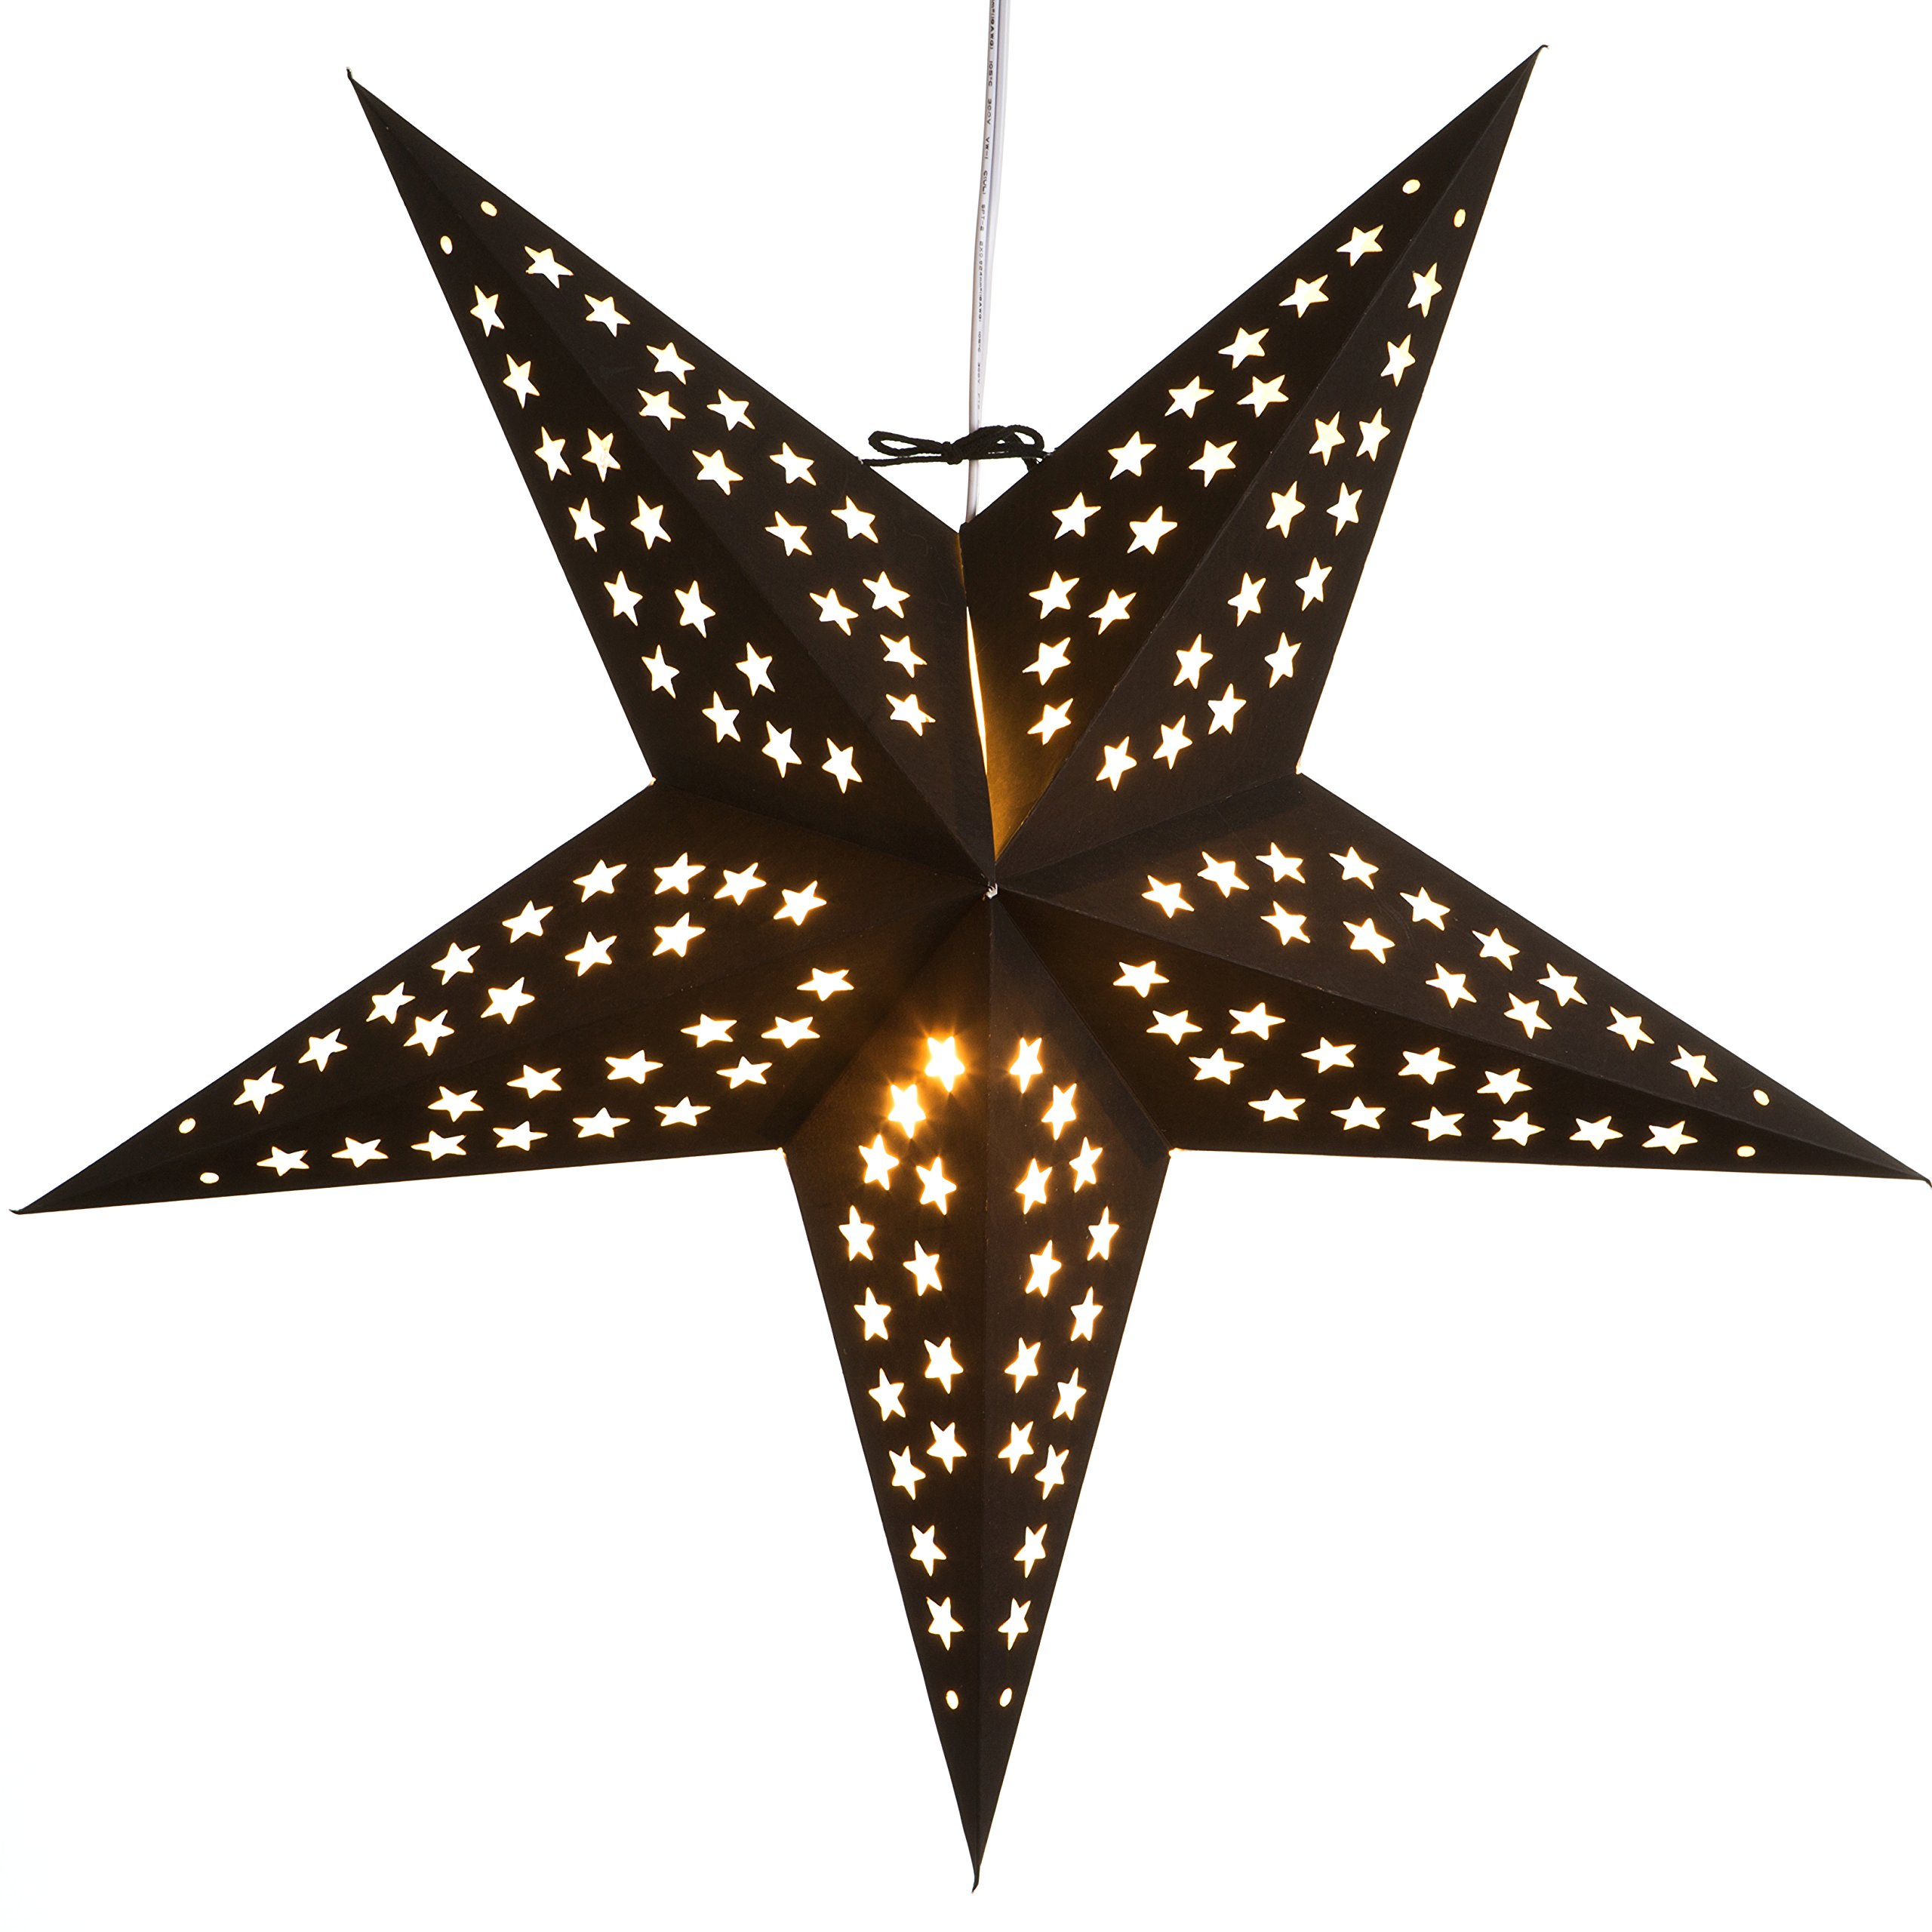 Paper Star Light Lamp Lantern with 12 Foot Power Cord Included (Black)